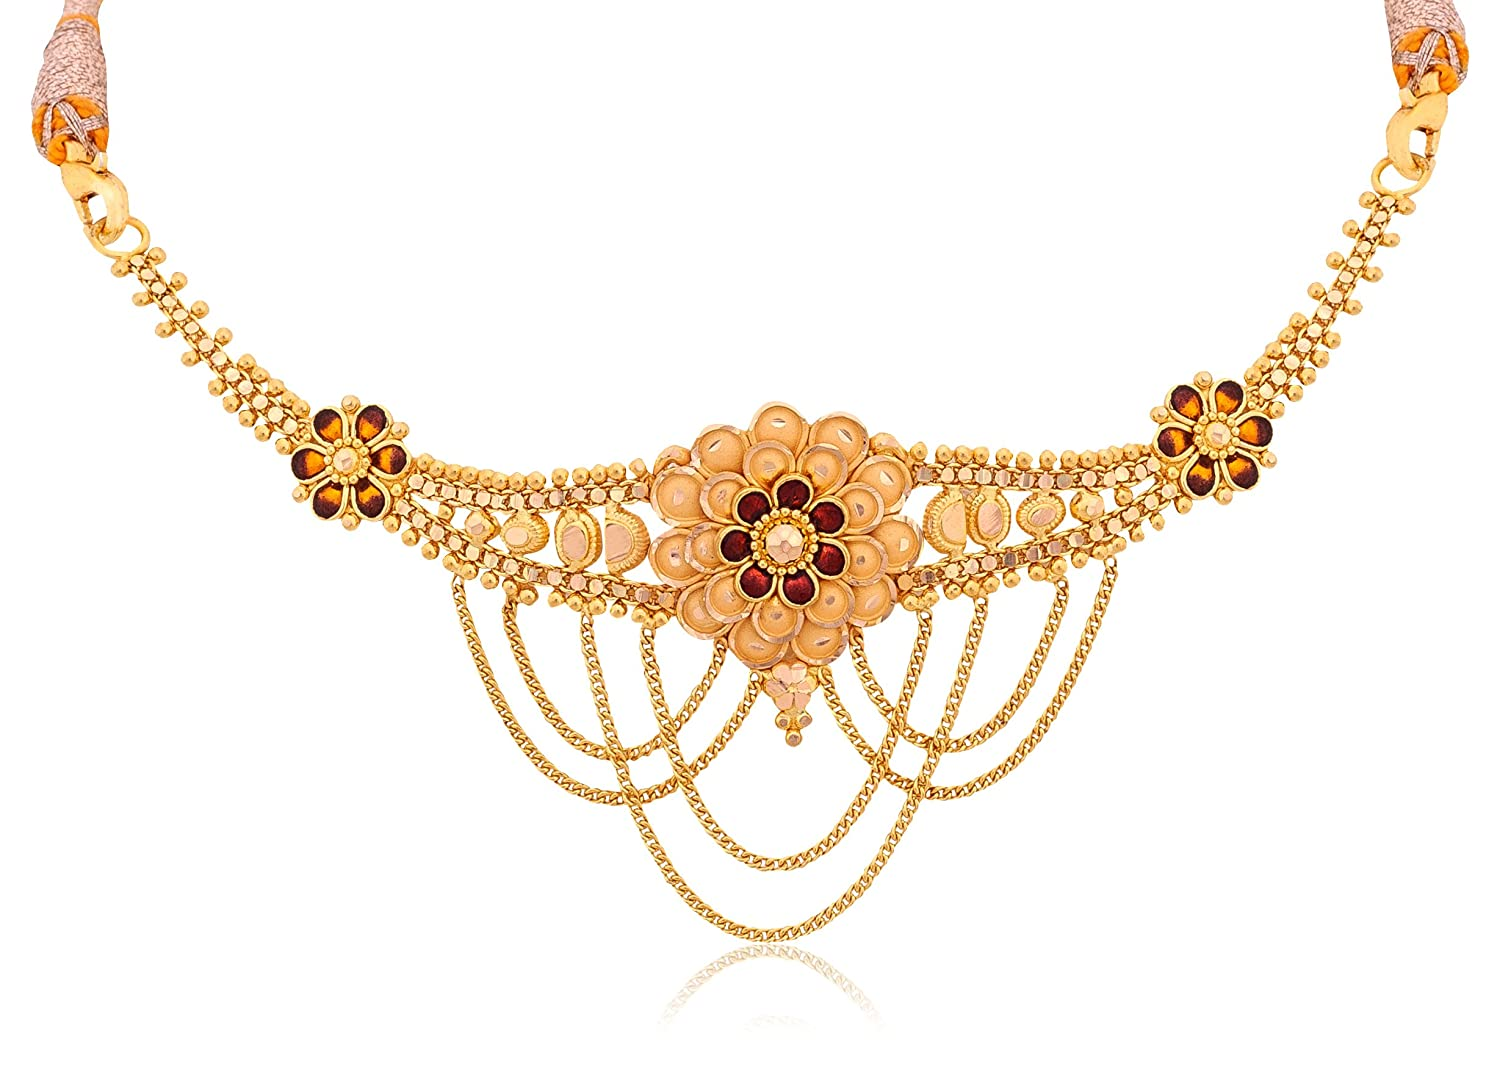 Buy Senco Gold 22k Yellow Gold Choker Necklace Online at Low ...